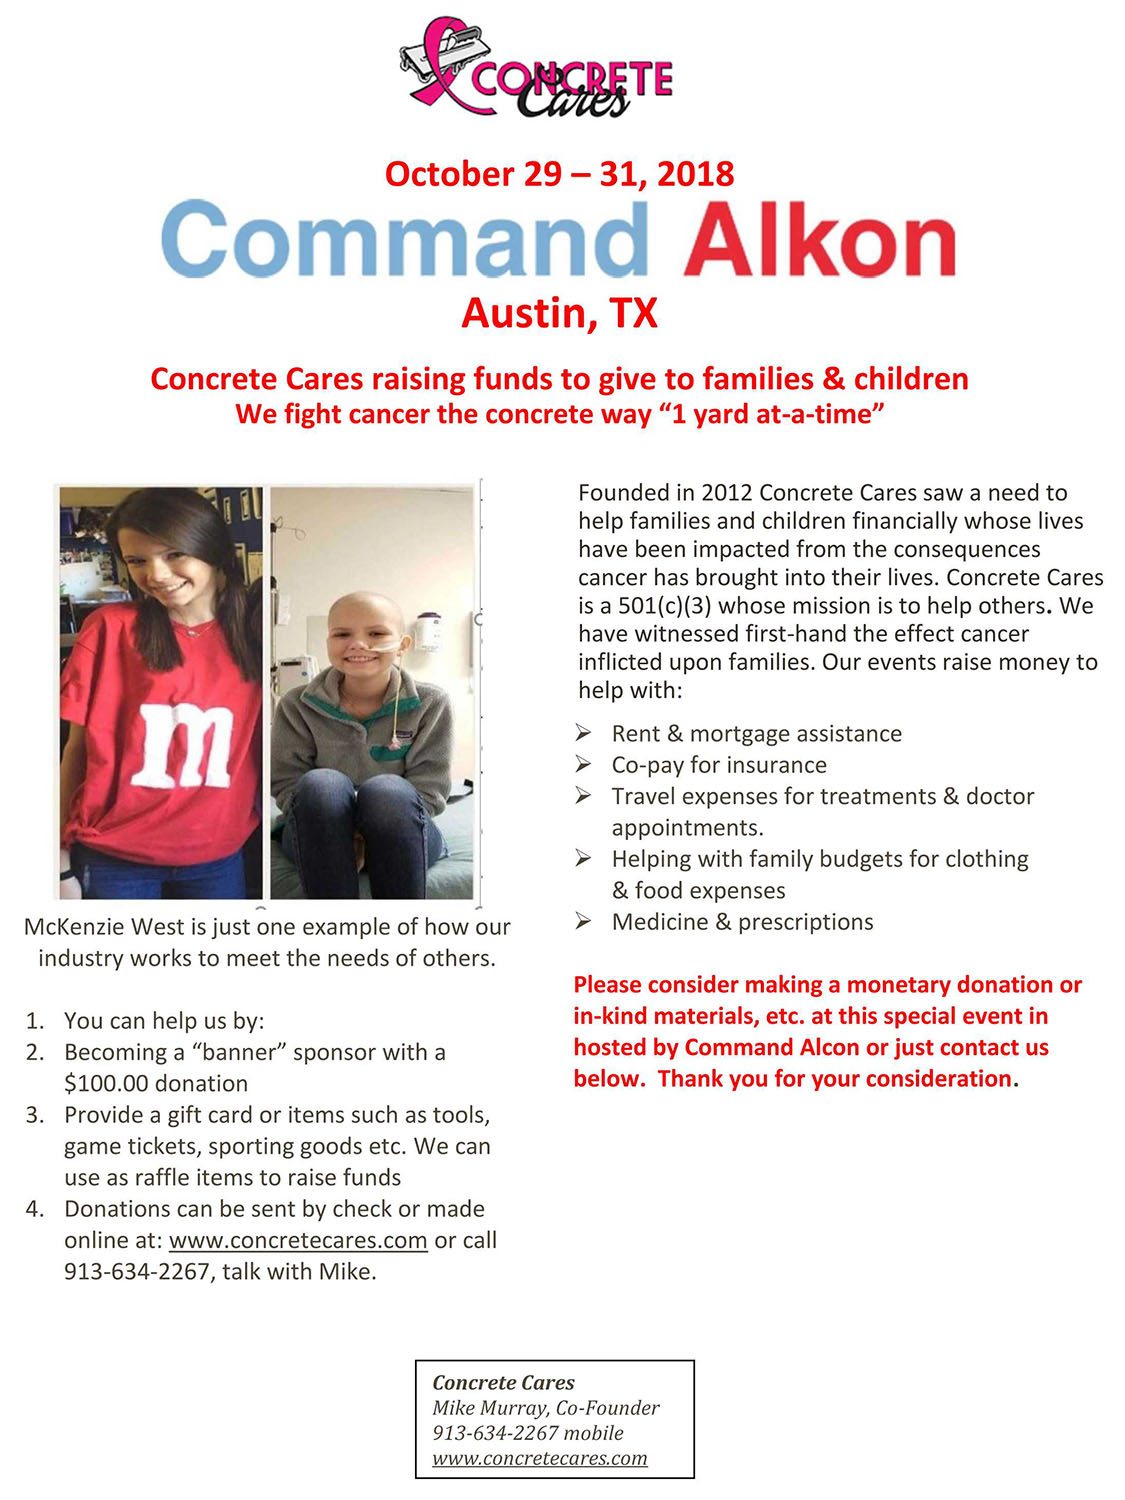 Concrete Cares 2018 Command Alkon.jpg